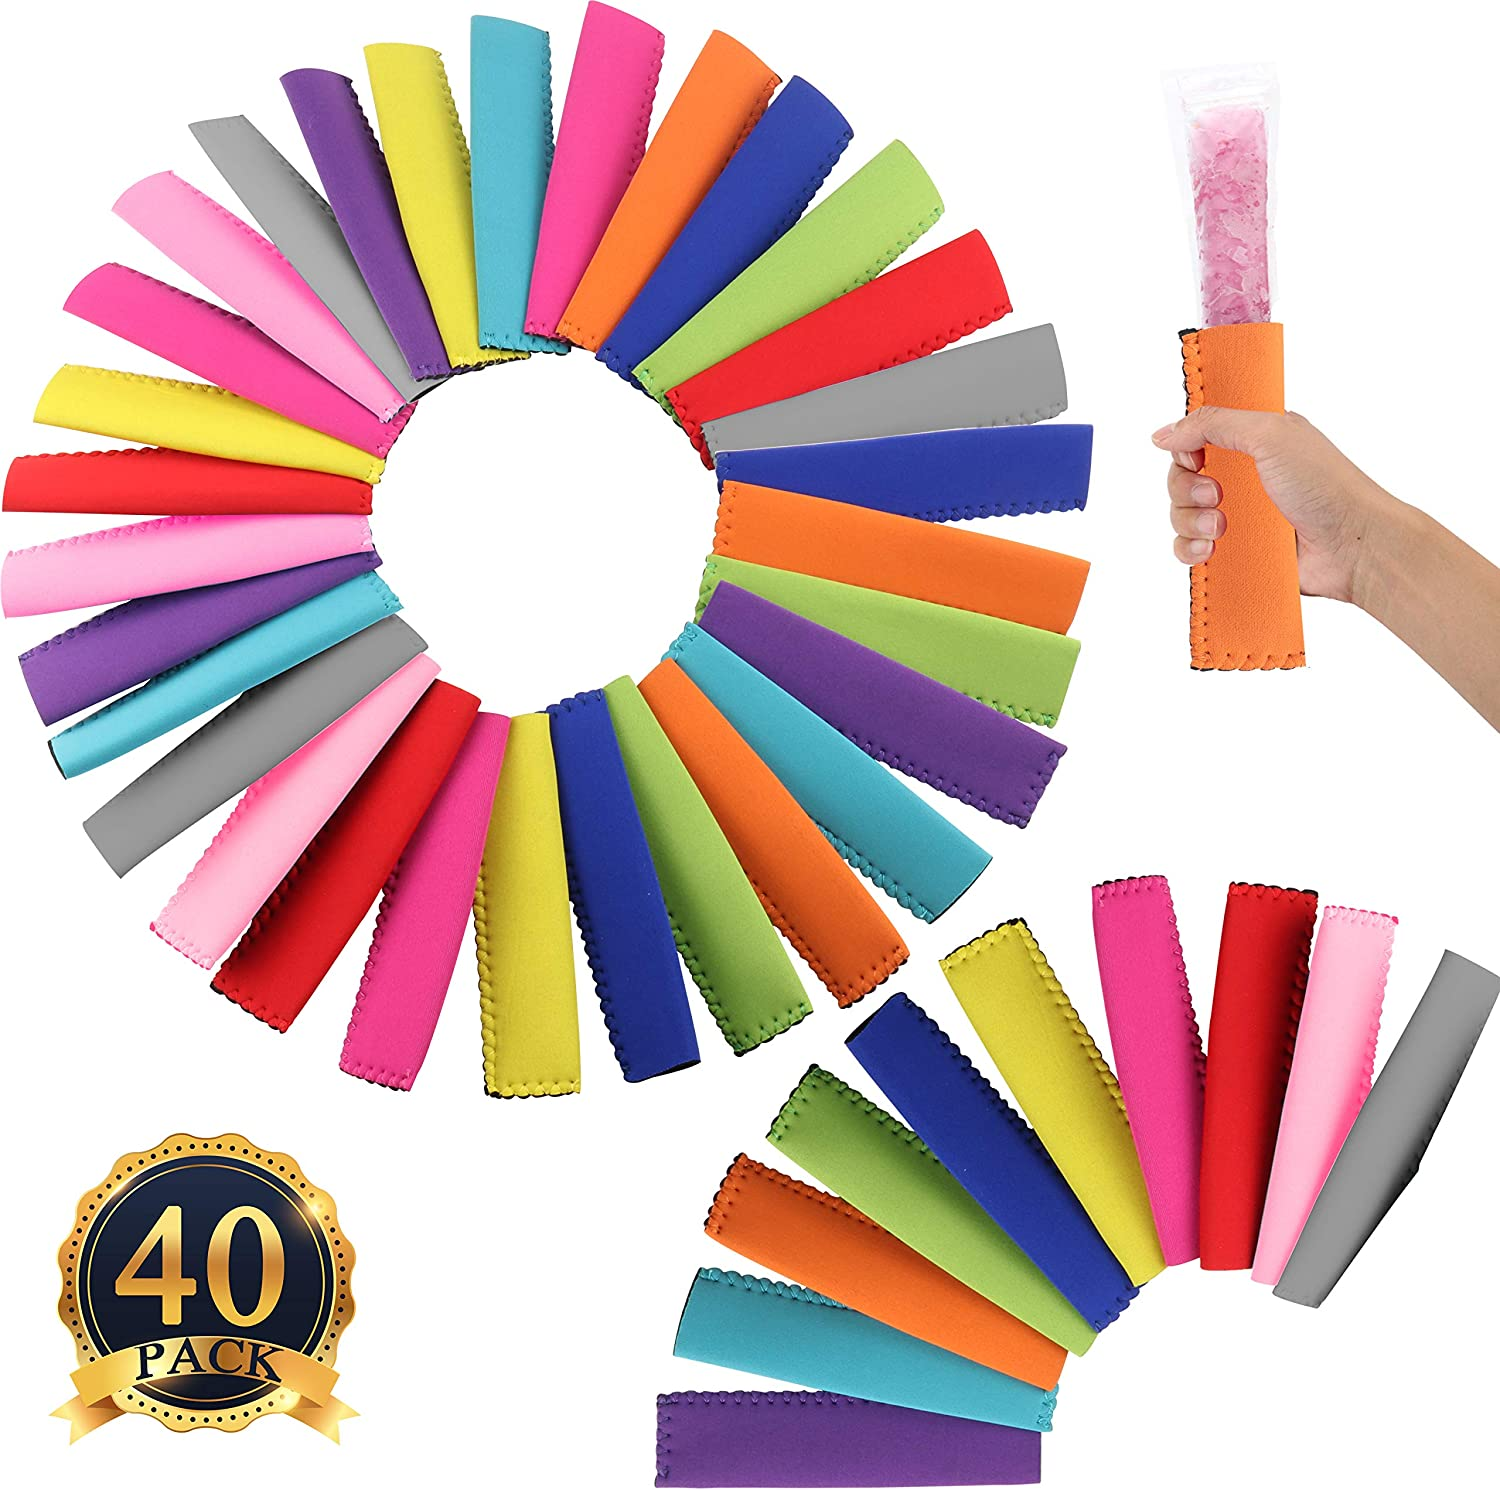 HaiMay 40 Pieces Reusable Popsicle Holders Popsicle Bags Freezer Ice Pop Sleeves Antifreezing Ice Pop Holders, 10 Colors